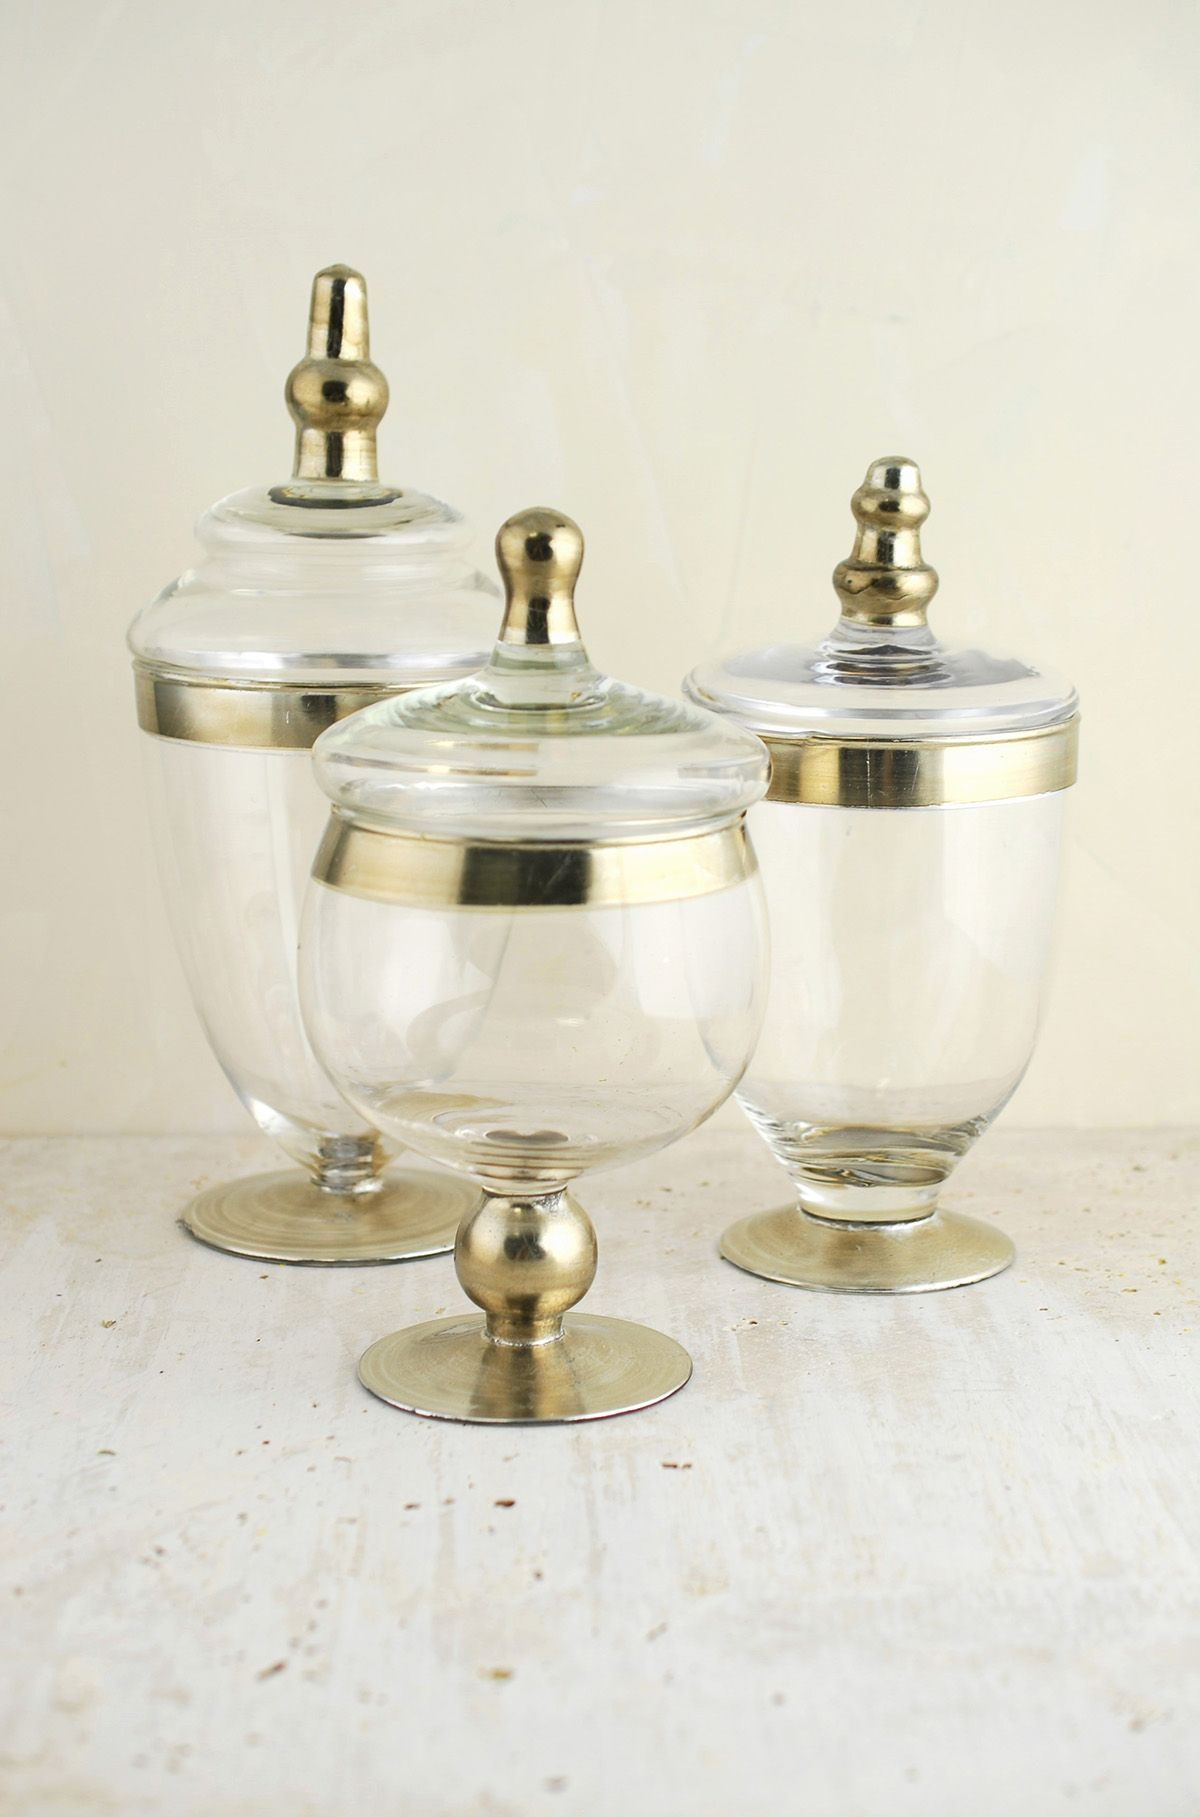 Apothecary jars with silver accents | Apothecaries, Jar and Wedding